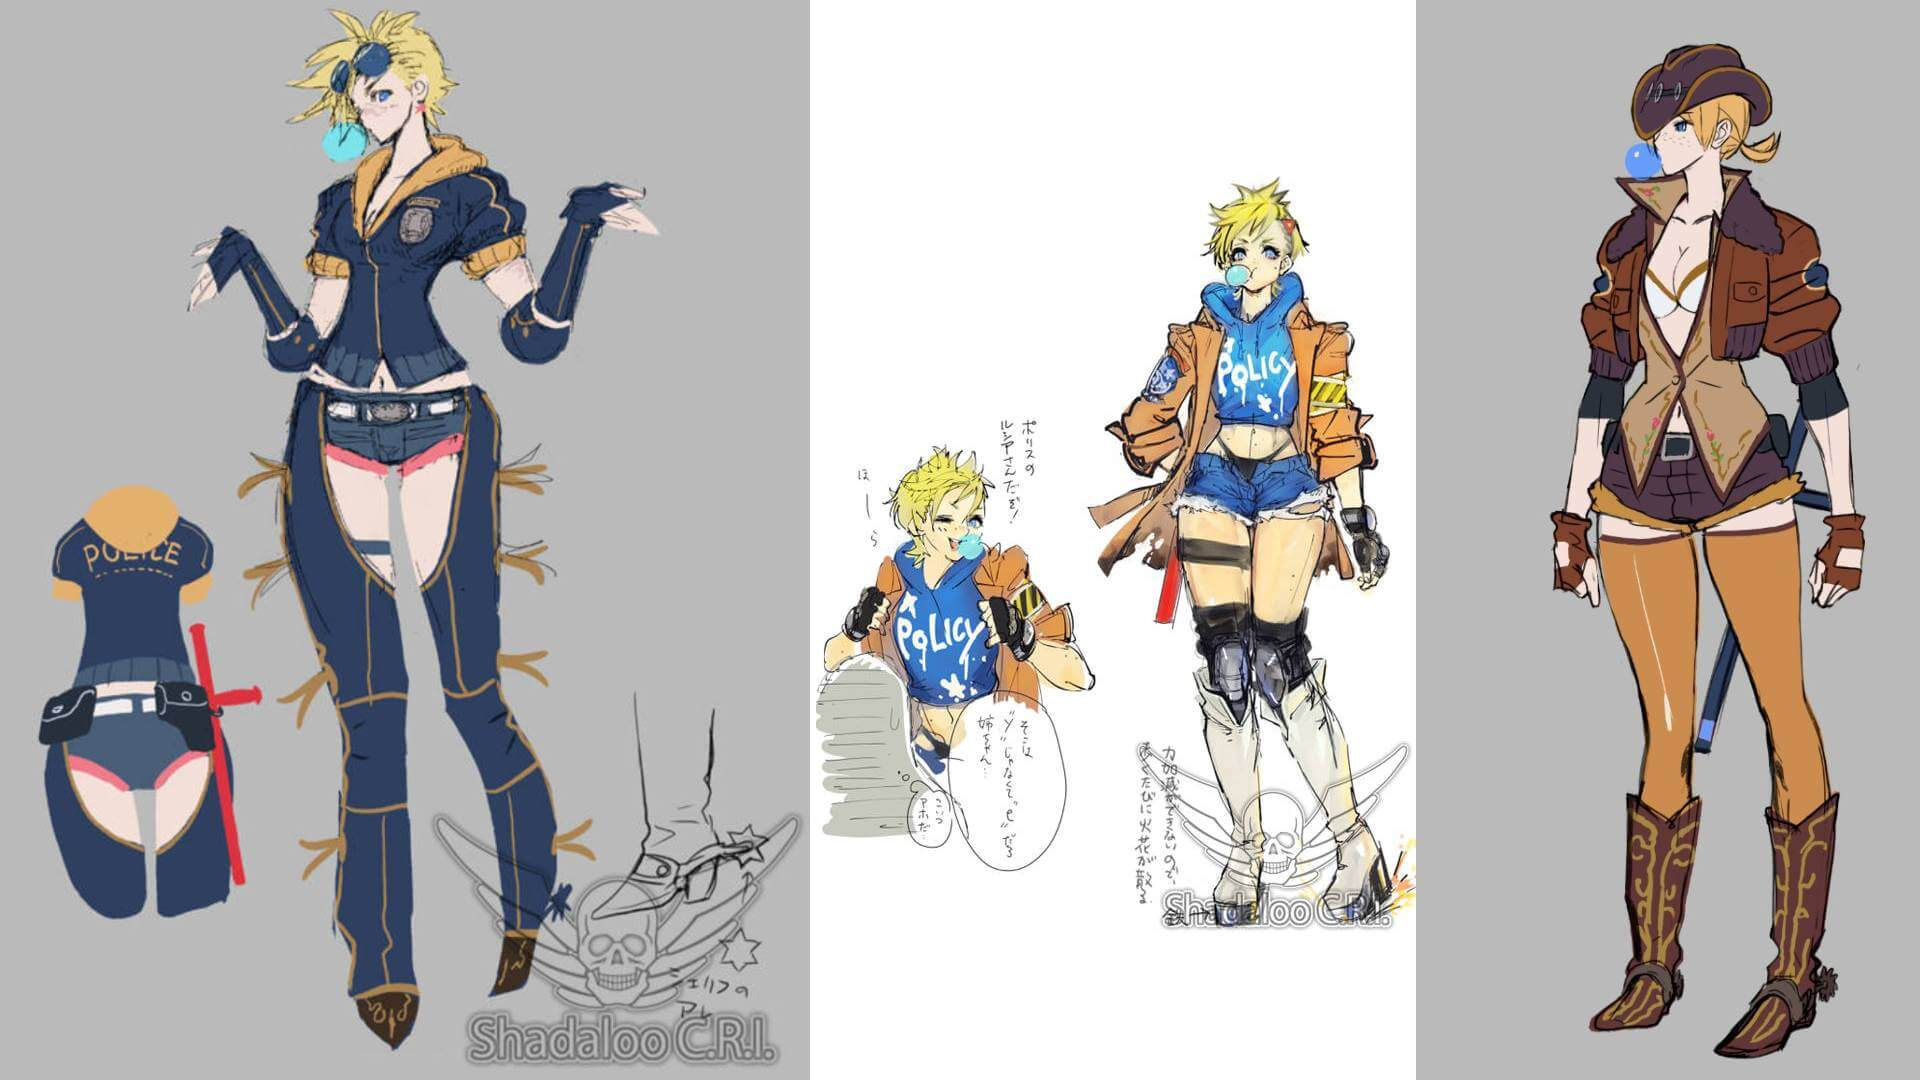 Lucia's Costumes to get Inspired for SFV Contest